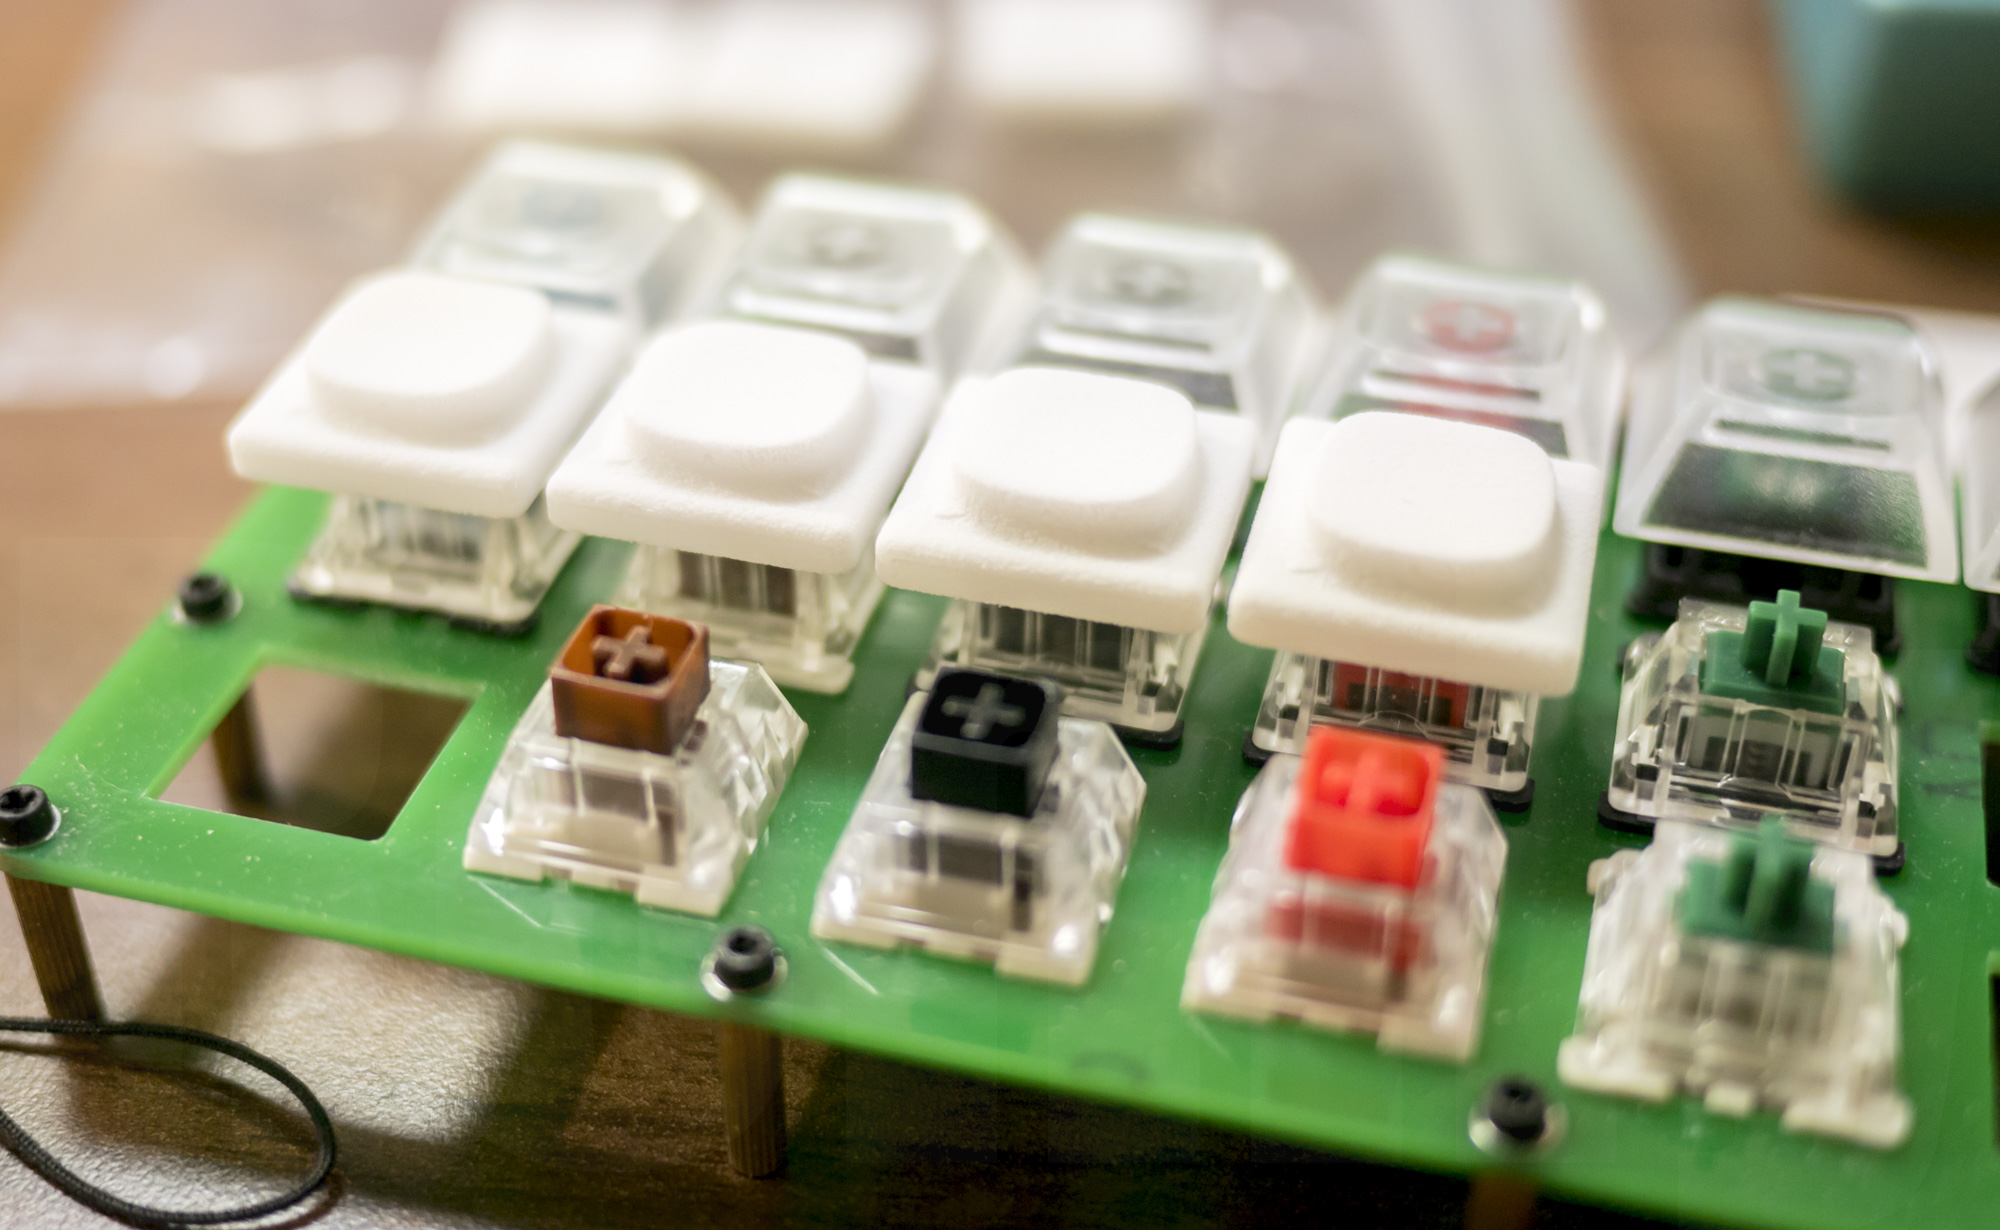 INSS40 keycap Fancy attached to switches